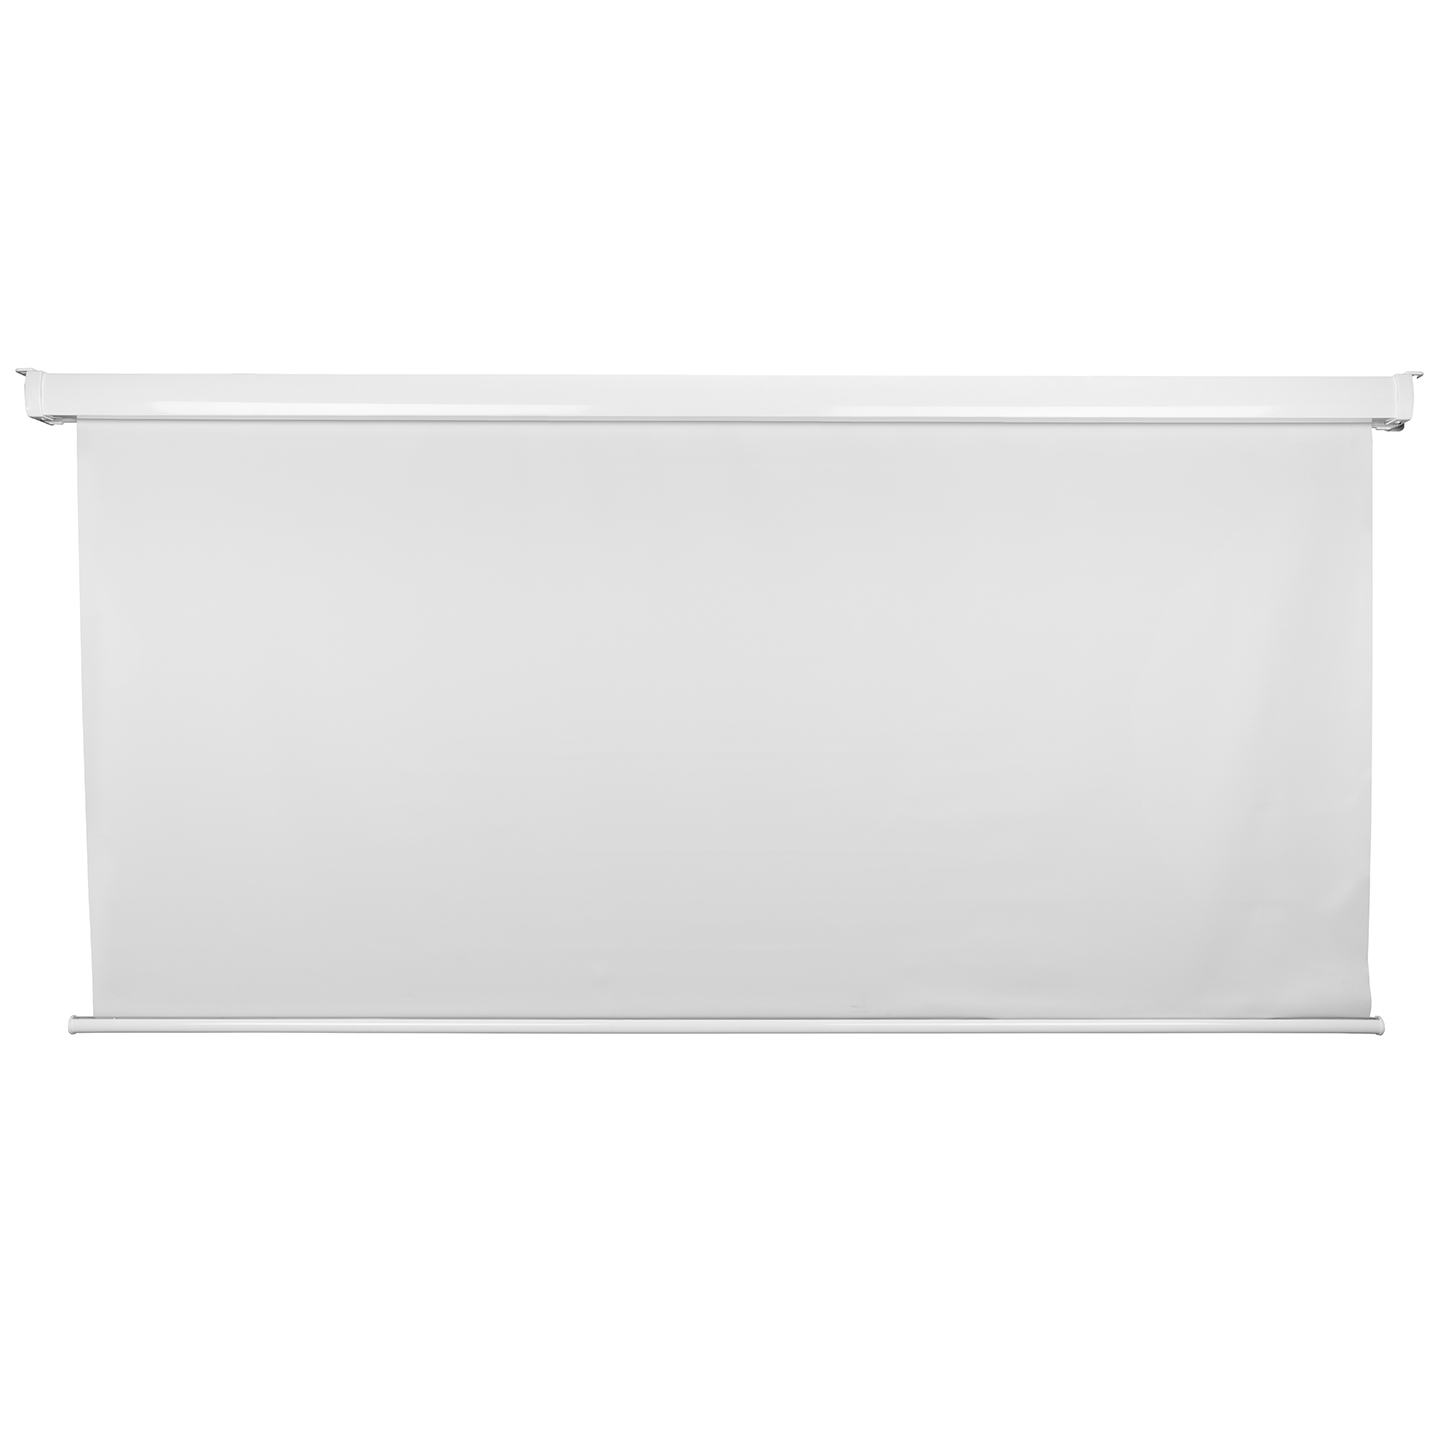 Everest PSEB96 180 * 180 Projection Screen with Roller